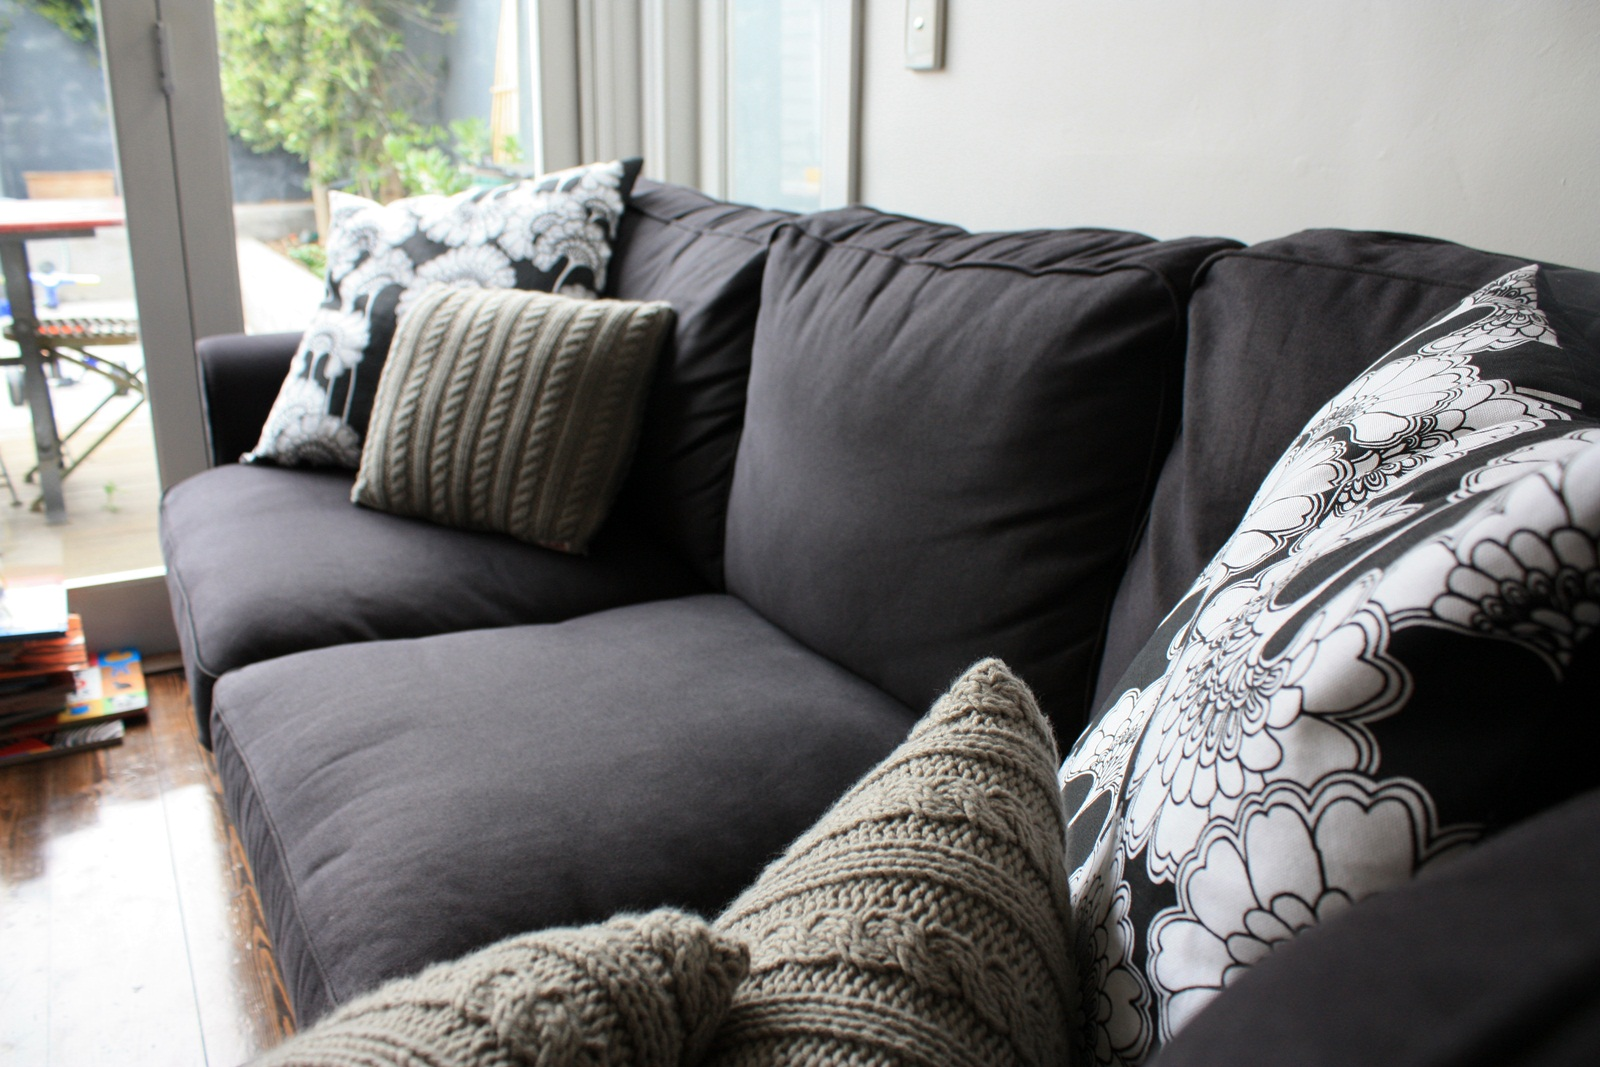 Gray And White Sofa Black And White Pillows